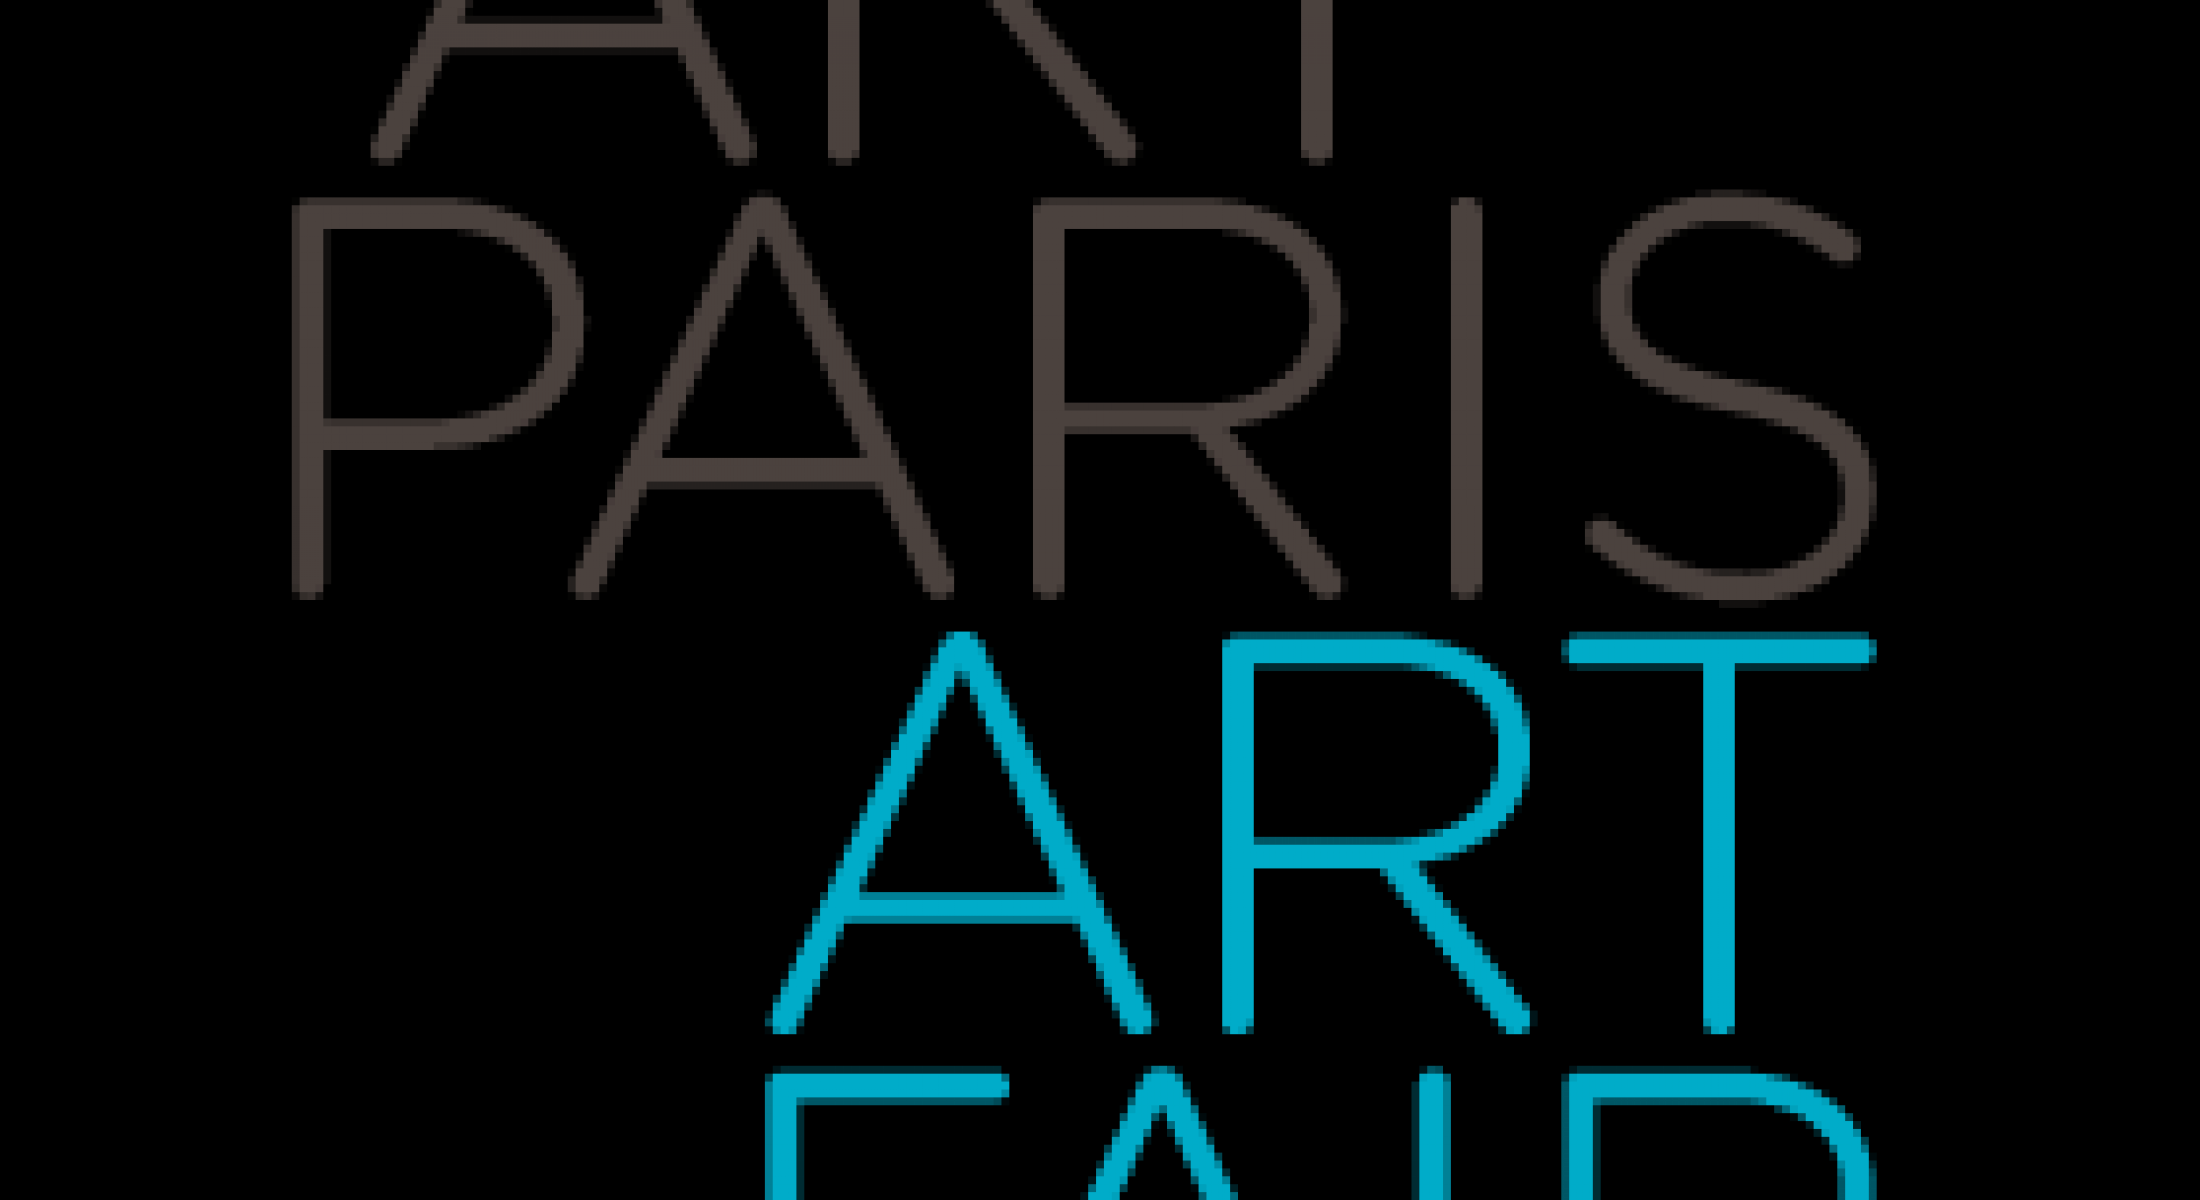 Yves Netzhammer - projet mapping façade Grand Palais - Art Paris Art Fair 2018 - courtesy Yves Netzhammer